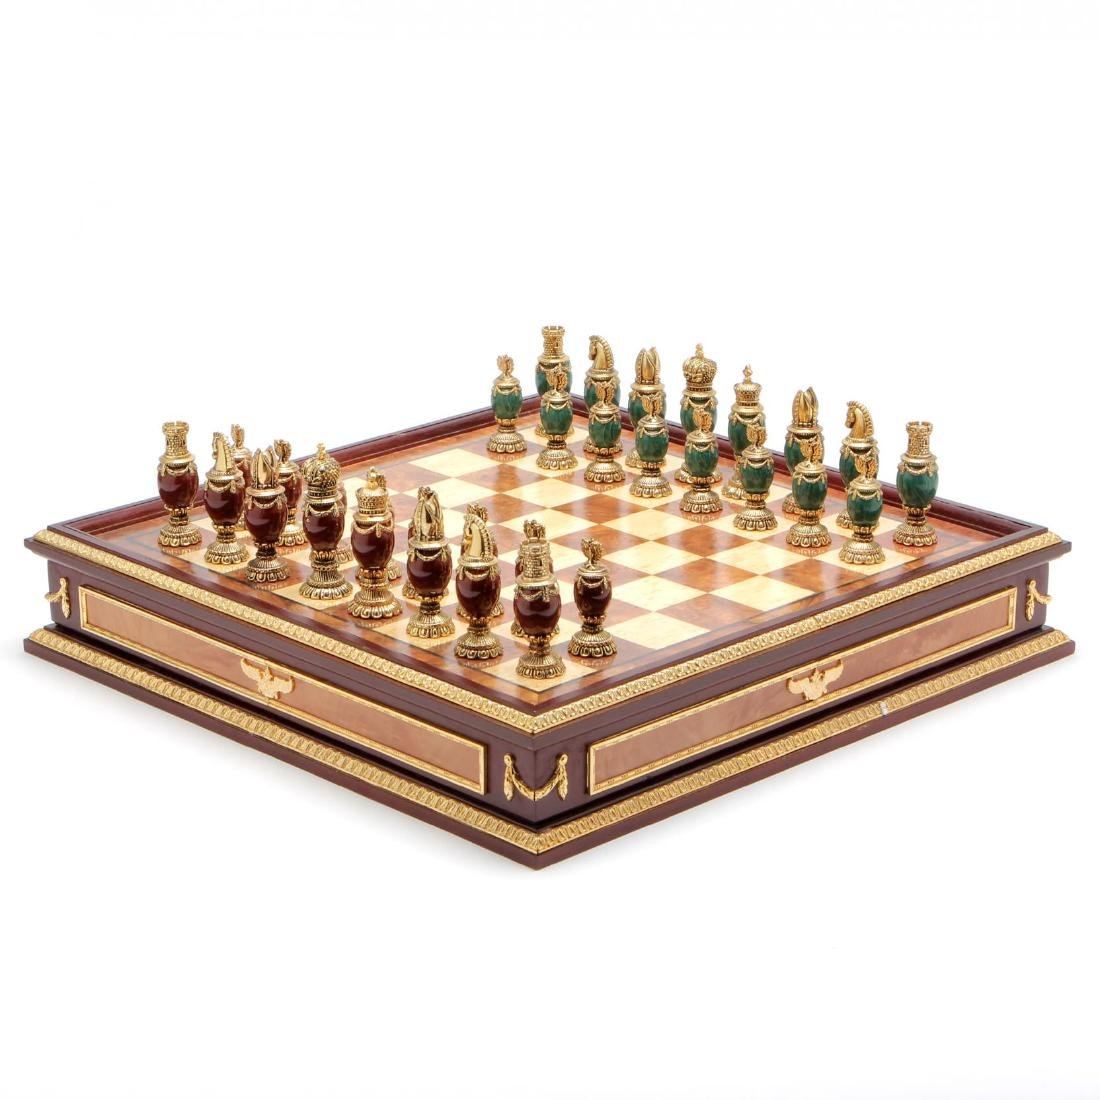 Faberge Imperial Jeweled Chess / Board Limited Edition - 6